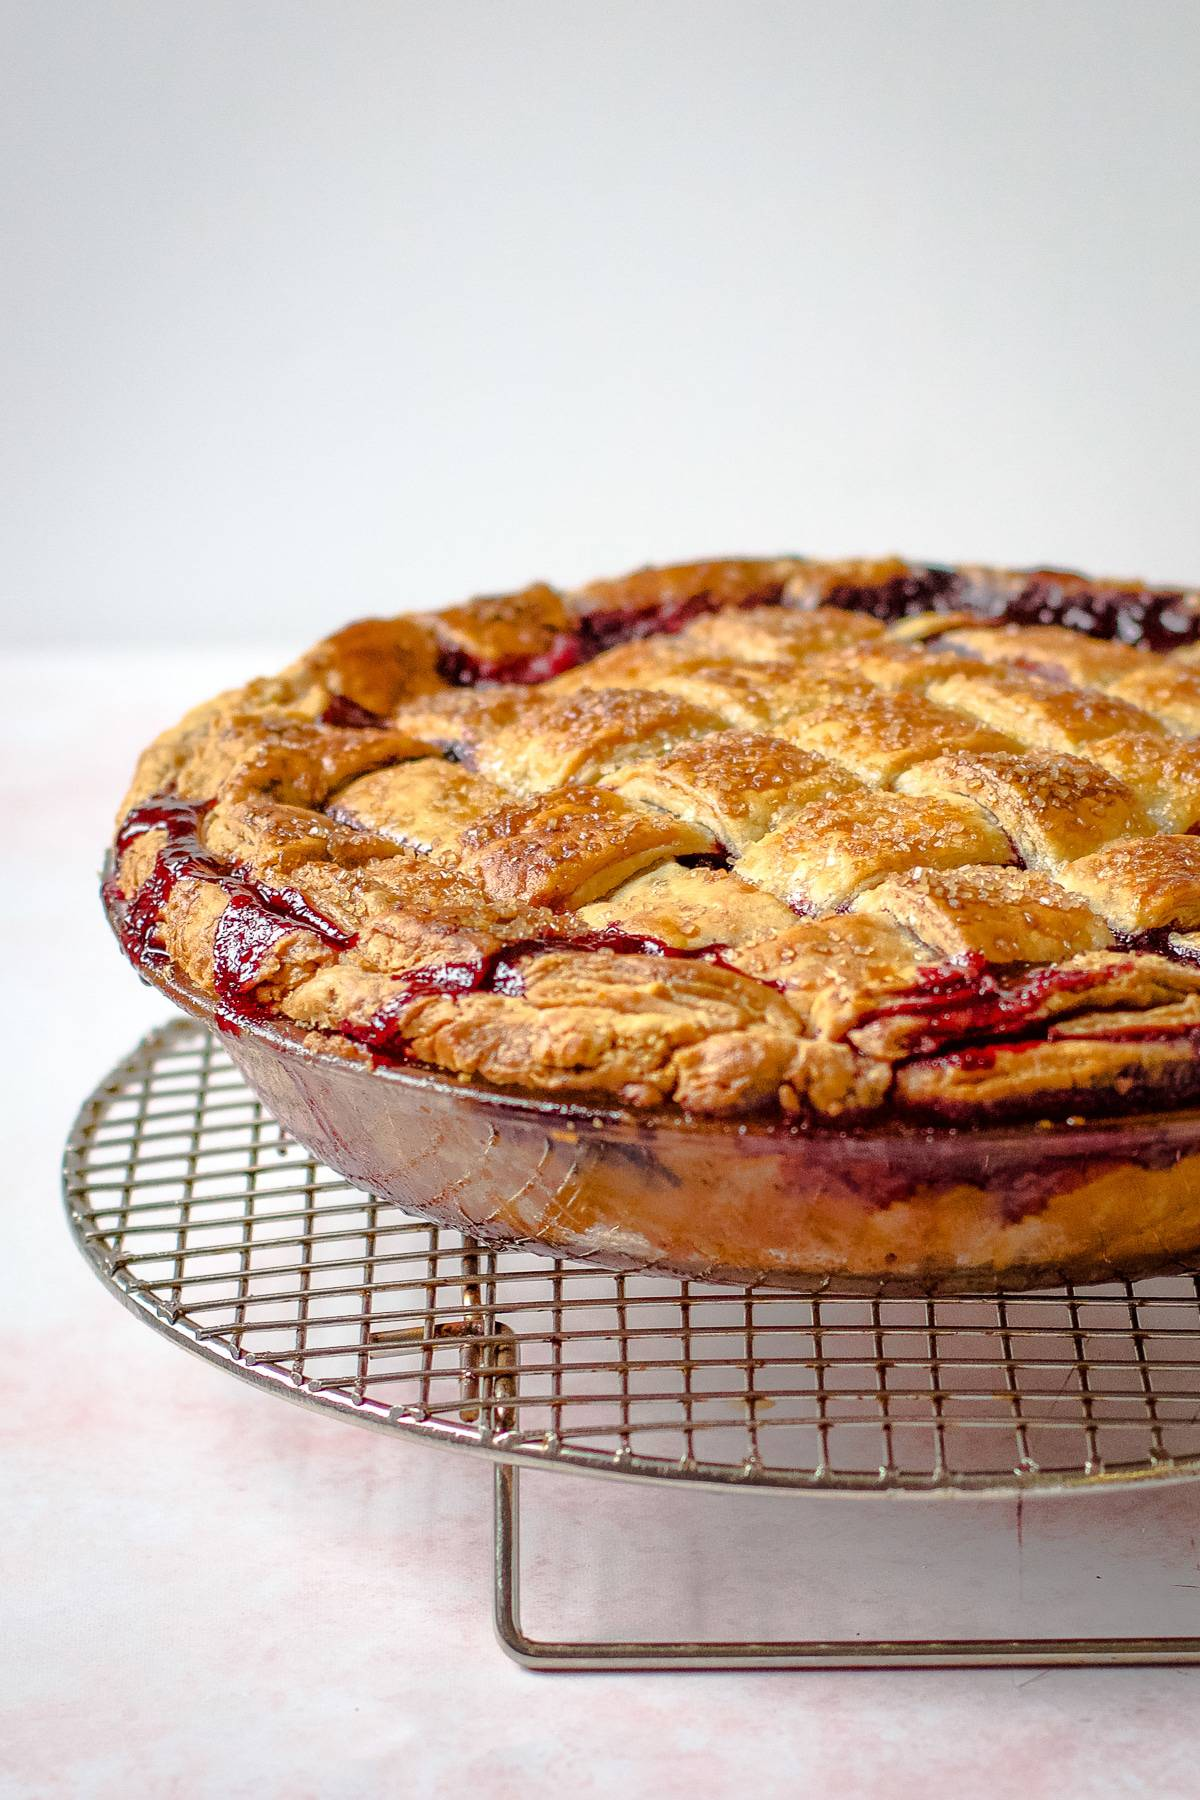 A lattice frozen cherry pie sitting on a cooling rack.